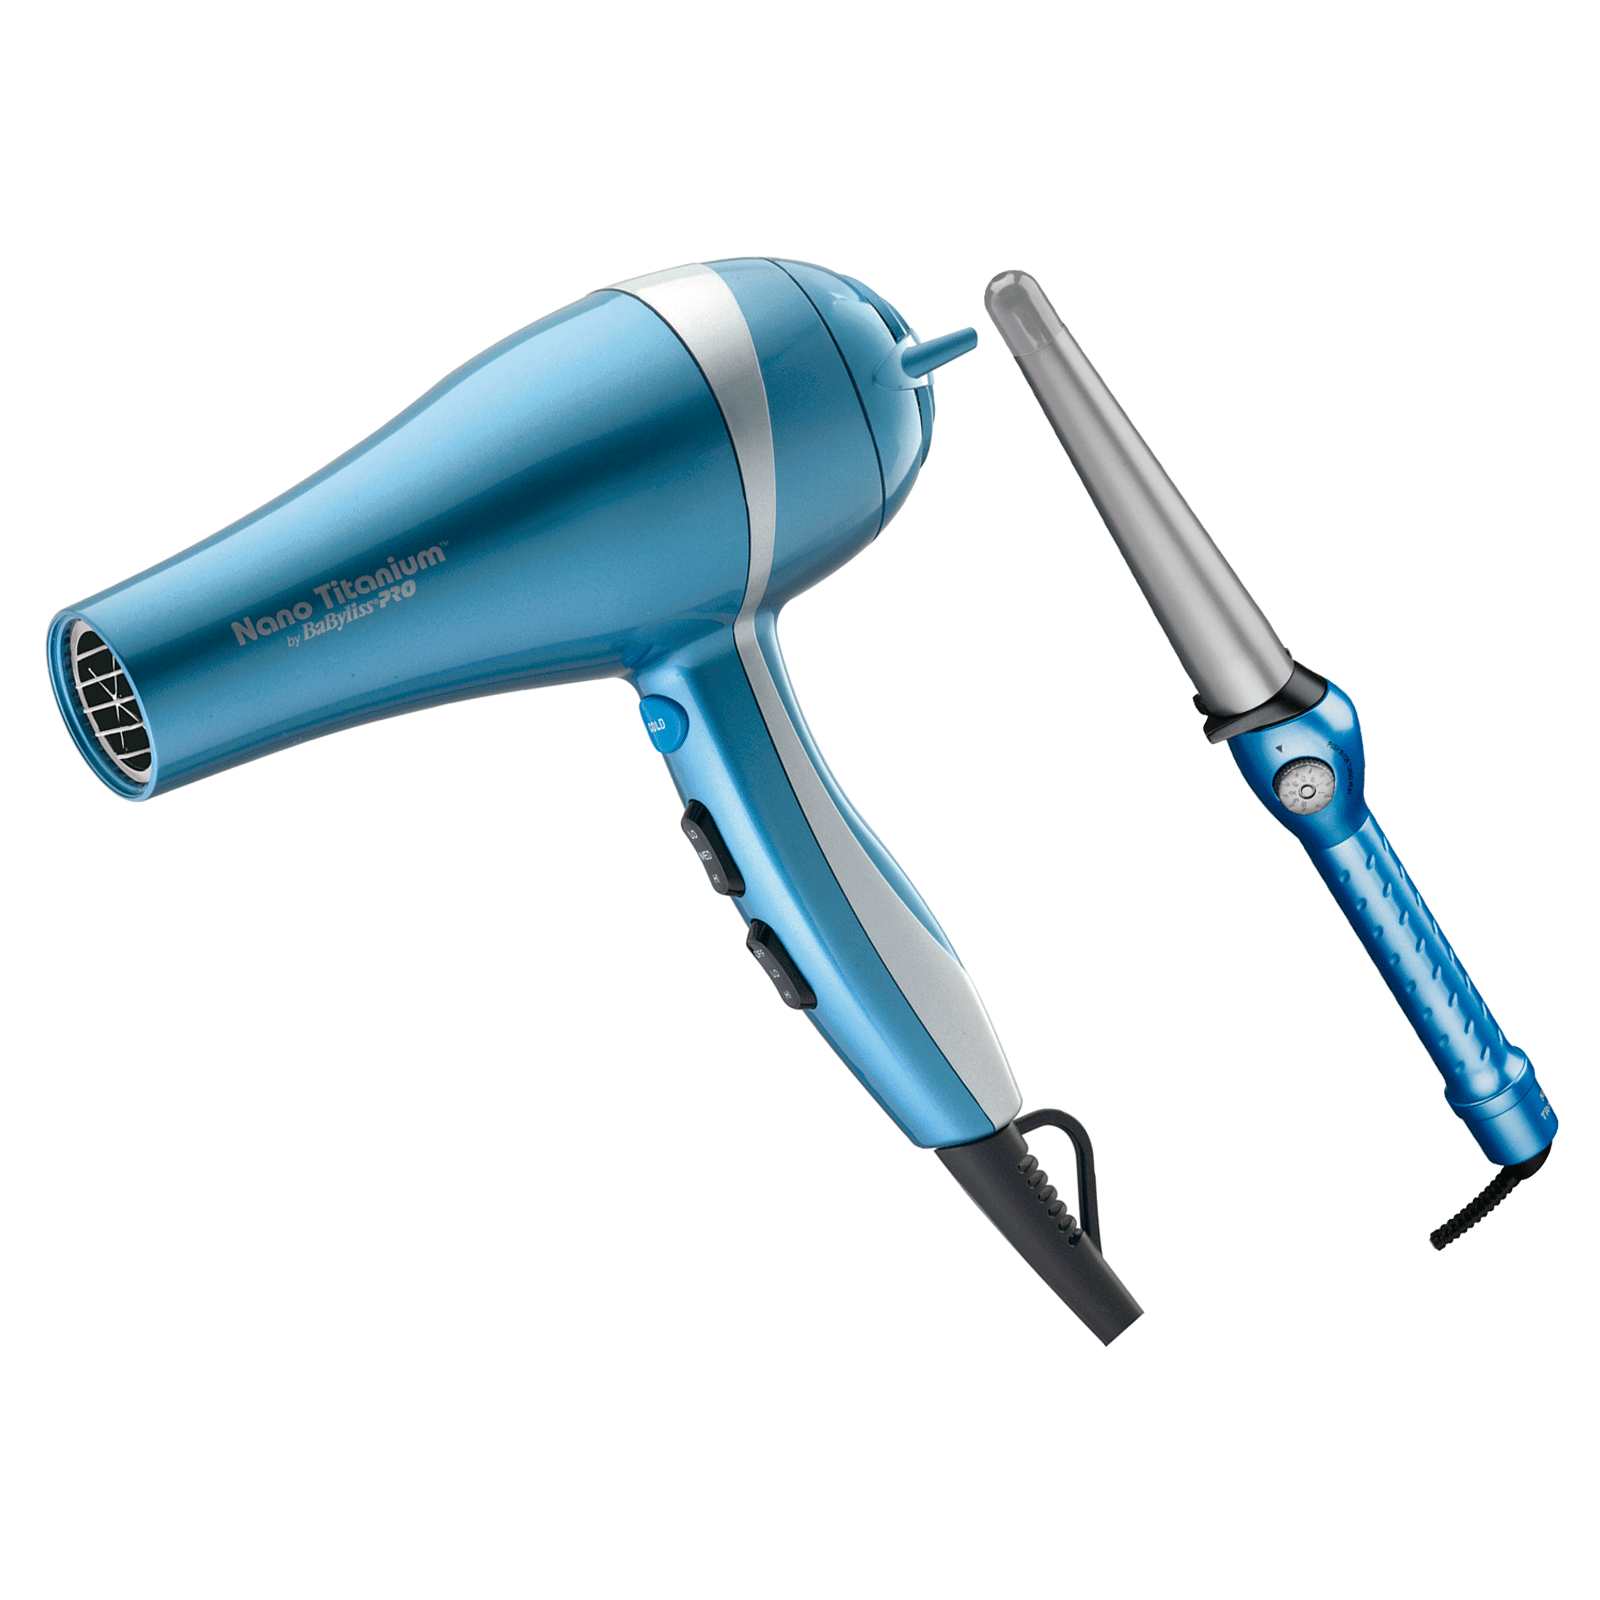 BaBylissPRO Nano Titanium Dryer, Tapered Barrel Iron